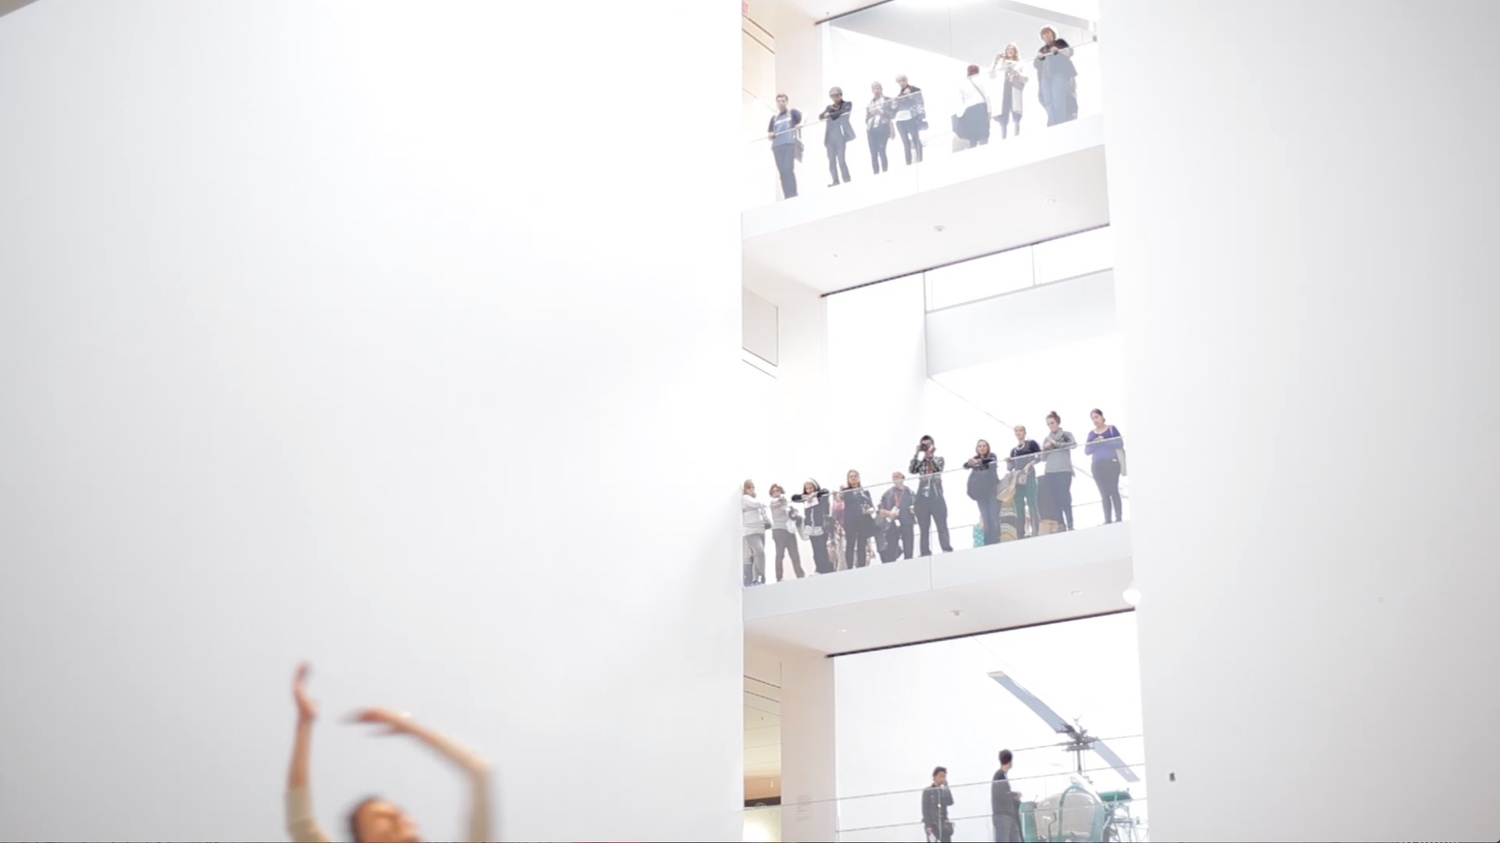 THE REACCESSION OF TED SHAWN   Adam H Weinert | MoMA 2013 | Still Image from video by Philippe Tremblay-Berberi